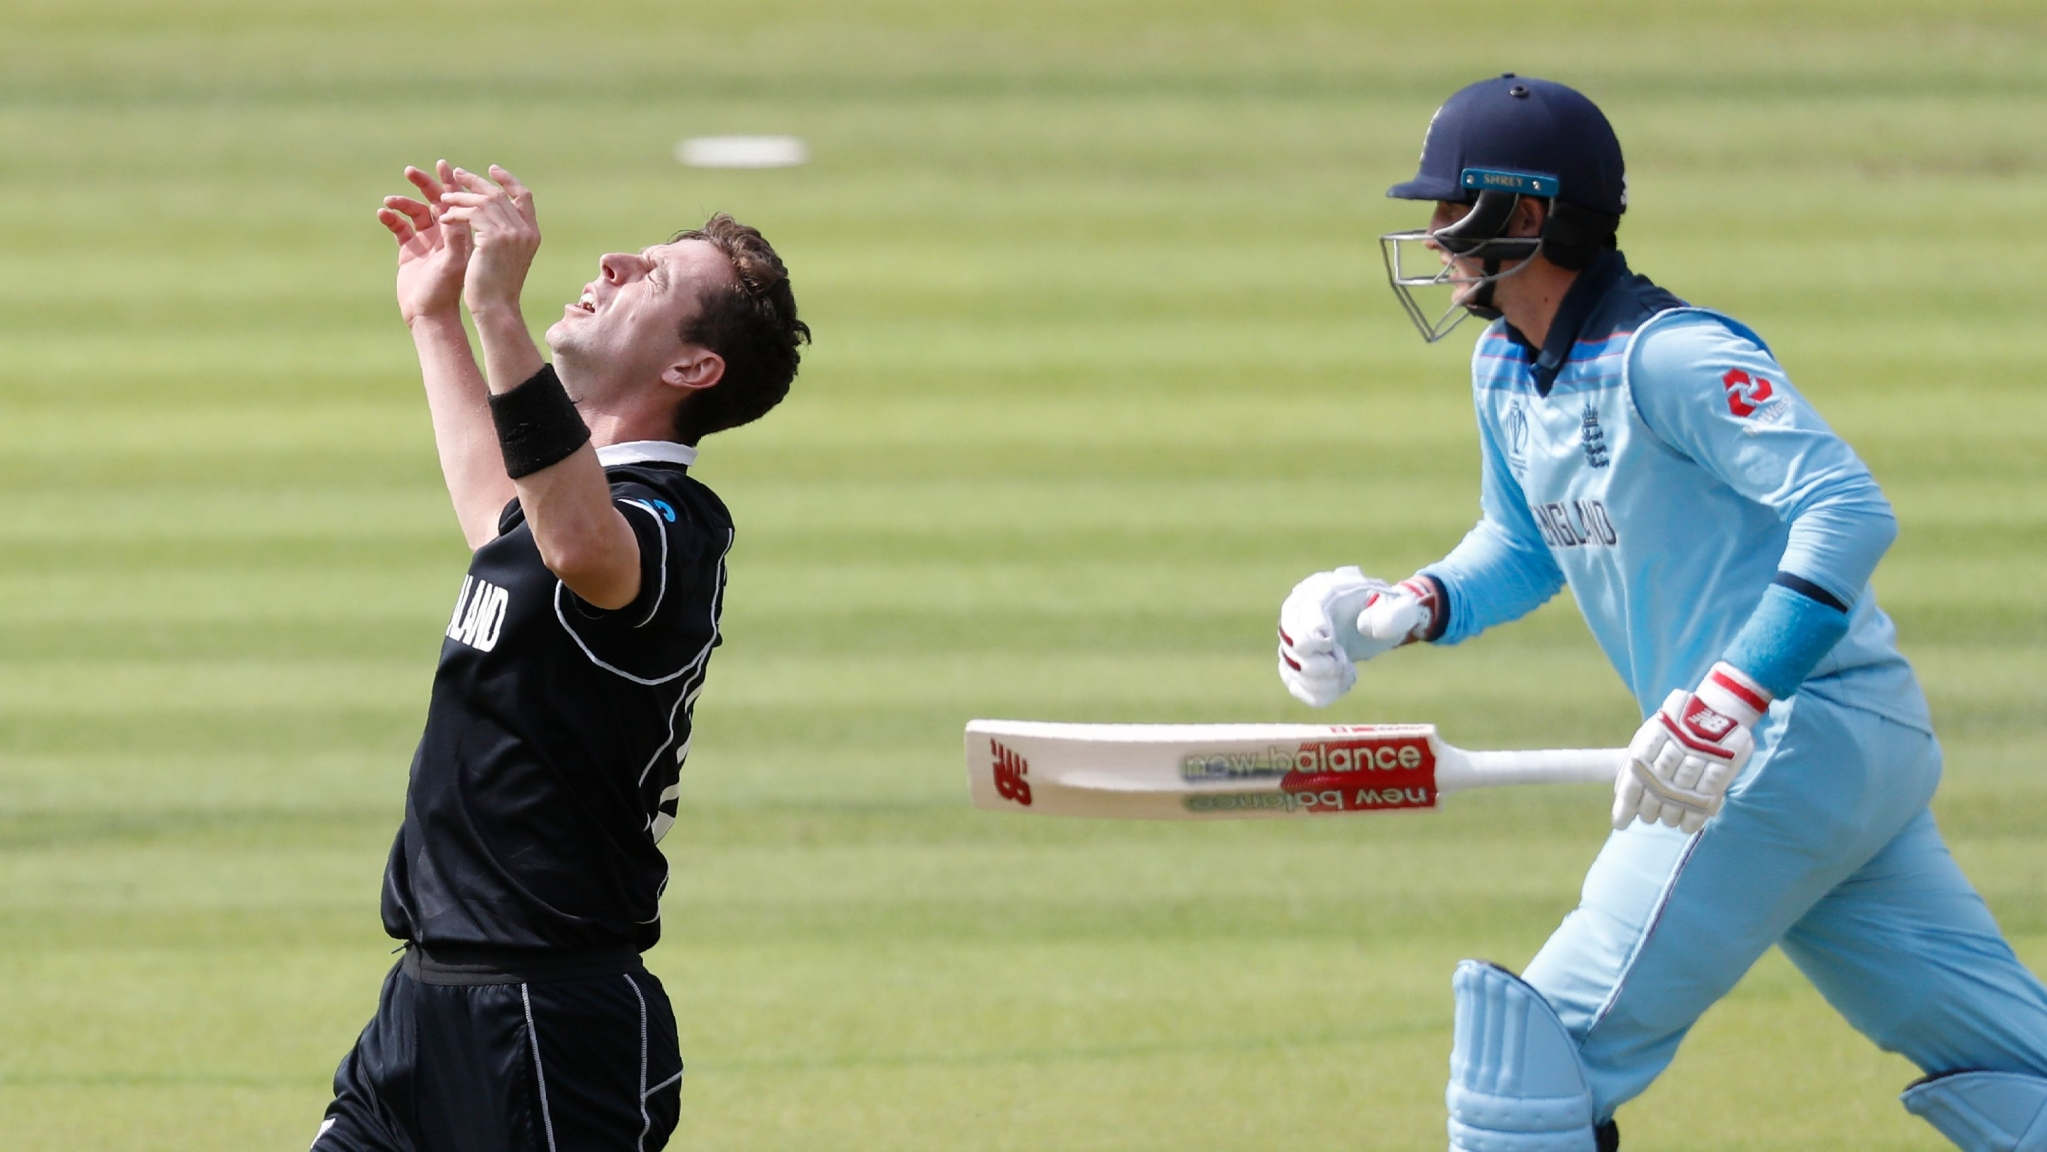 Eng v NZ World Cup Final LIVE: Root Dismissed For 30-Ball 7